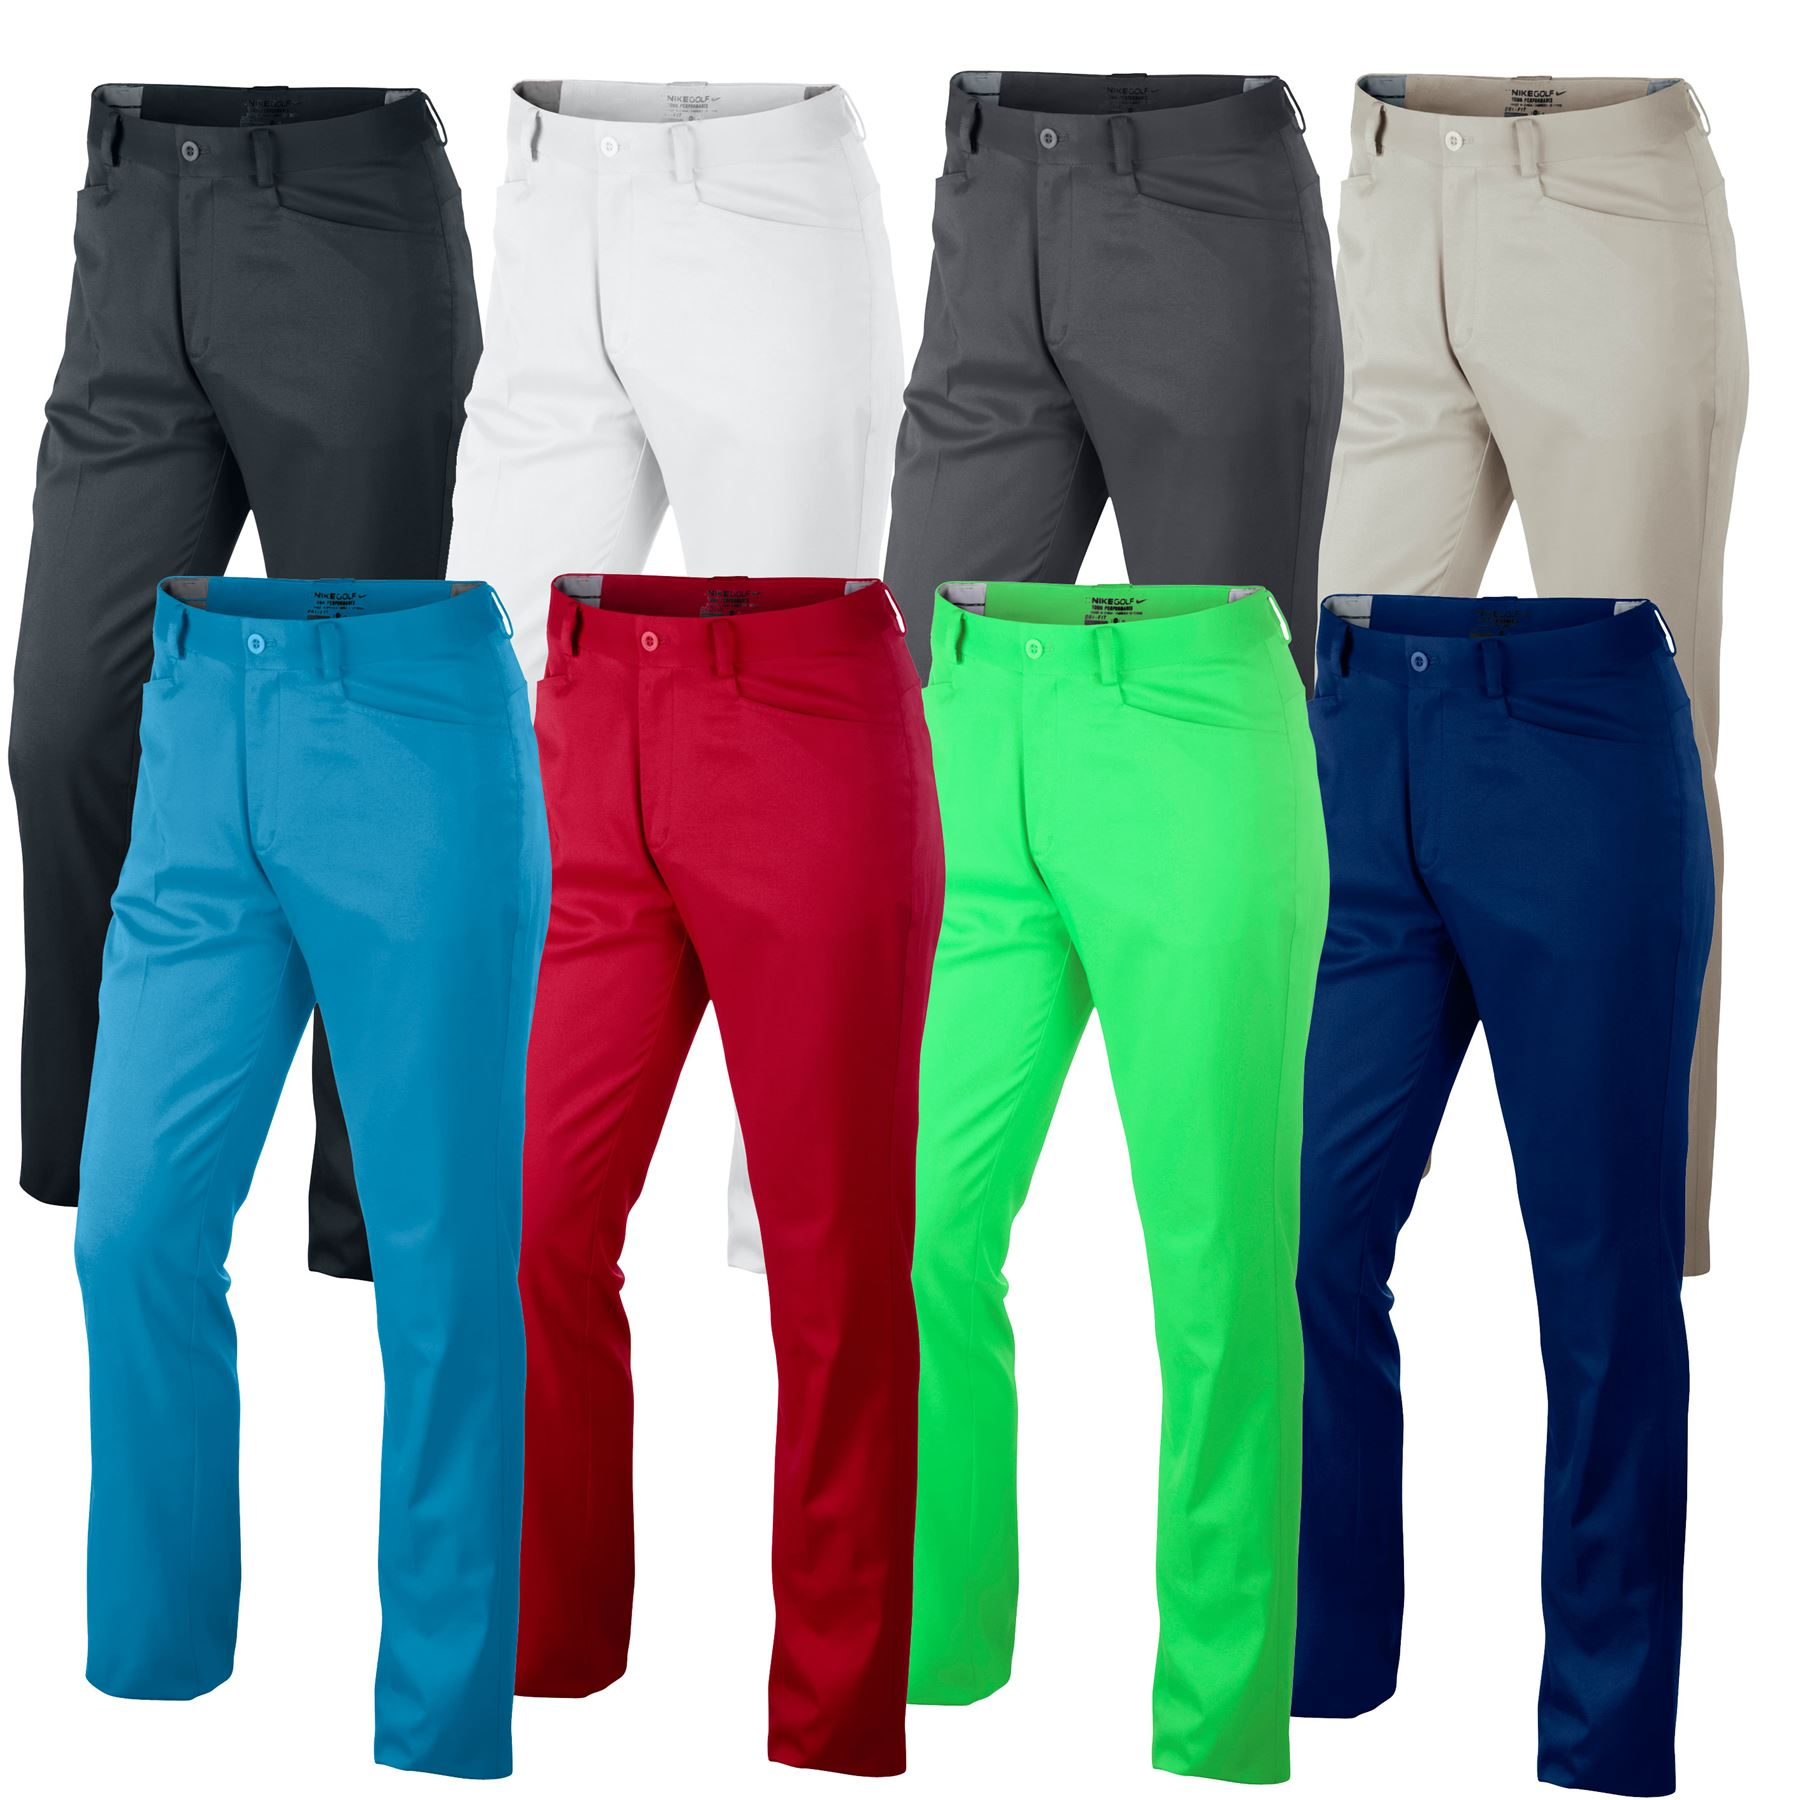 Nike golf pants dri fit